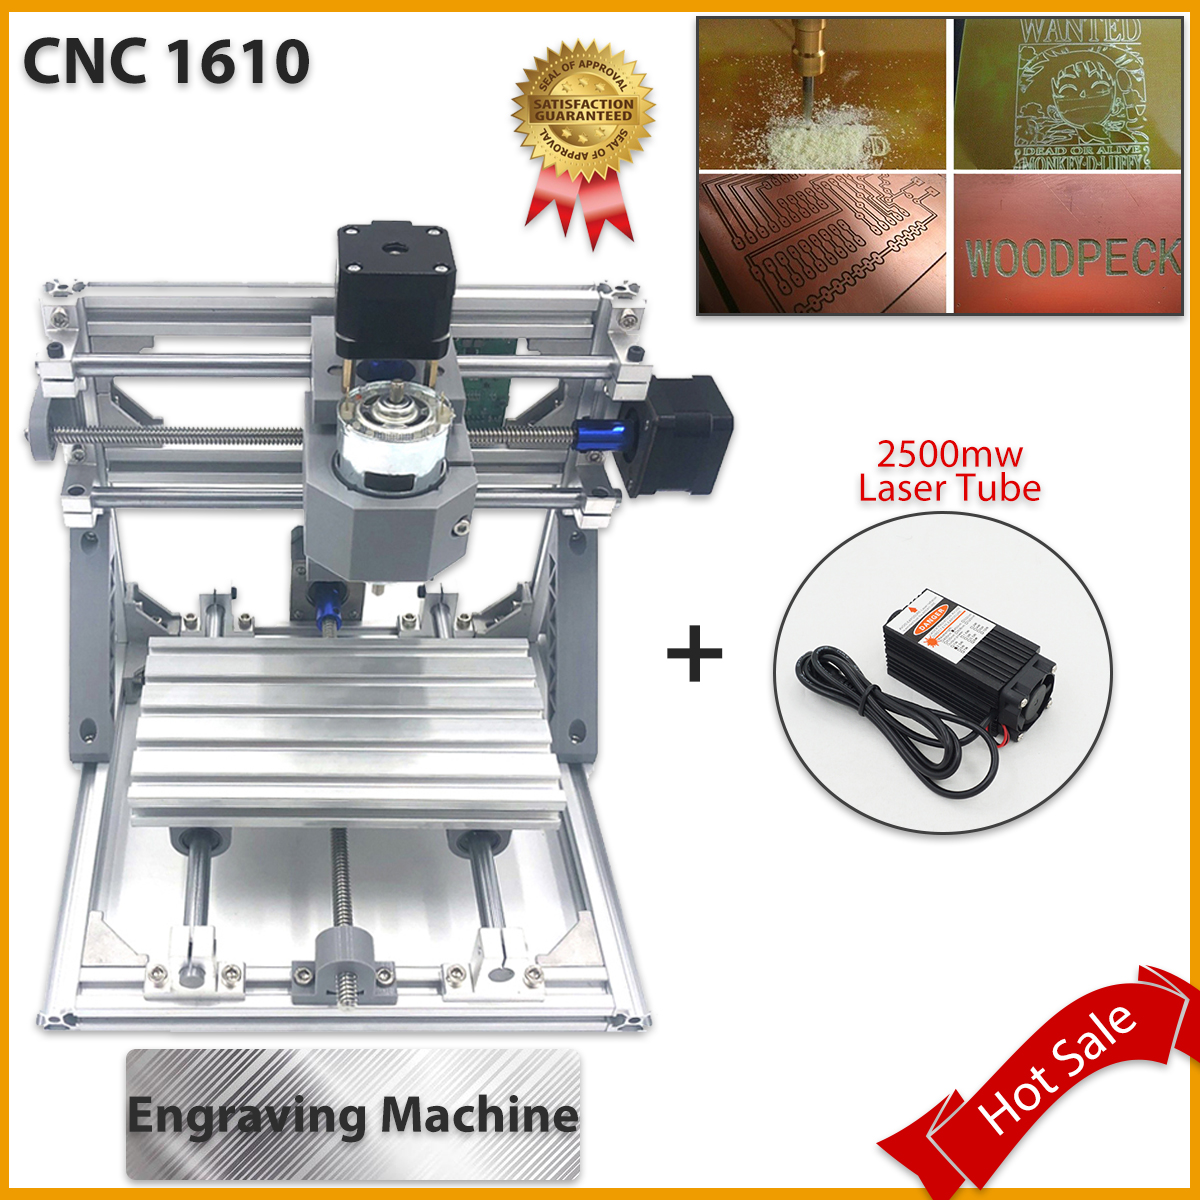 CNC 1610 2500mw Laser Tube Wood Router cnc milling machine cnc kit Wood Router laser engraving machine